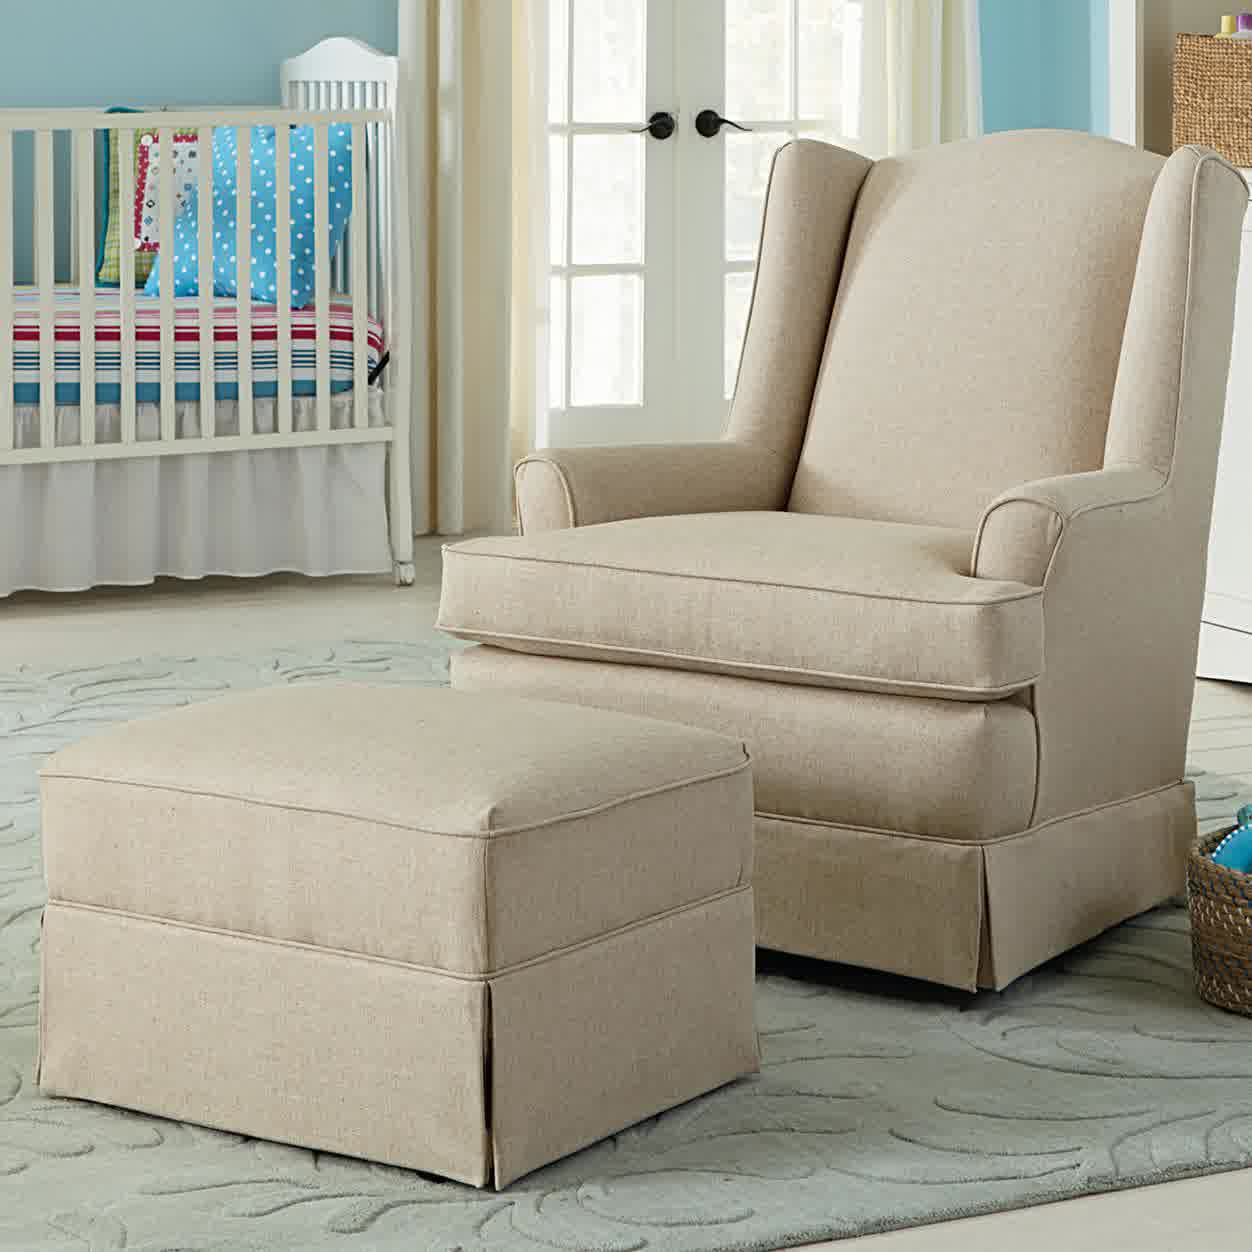 Picture of: Glider Rockers for Nursery in the Bed zoom